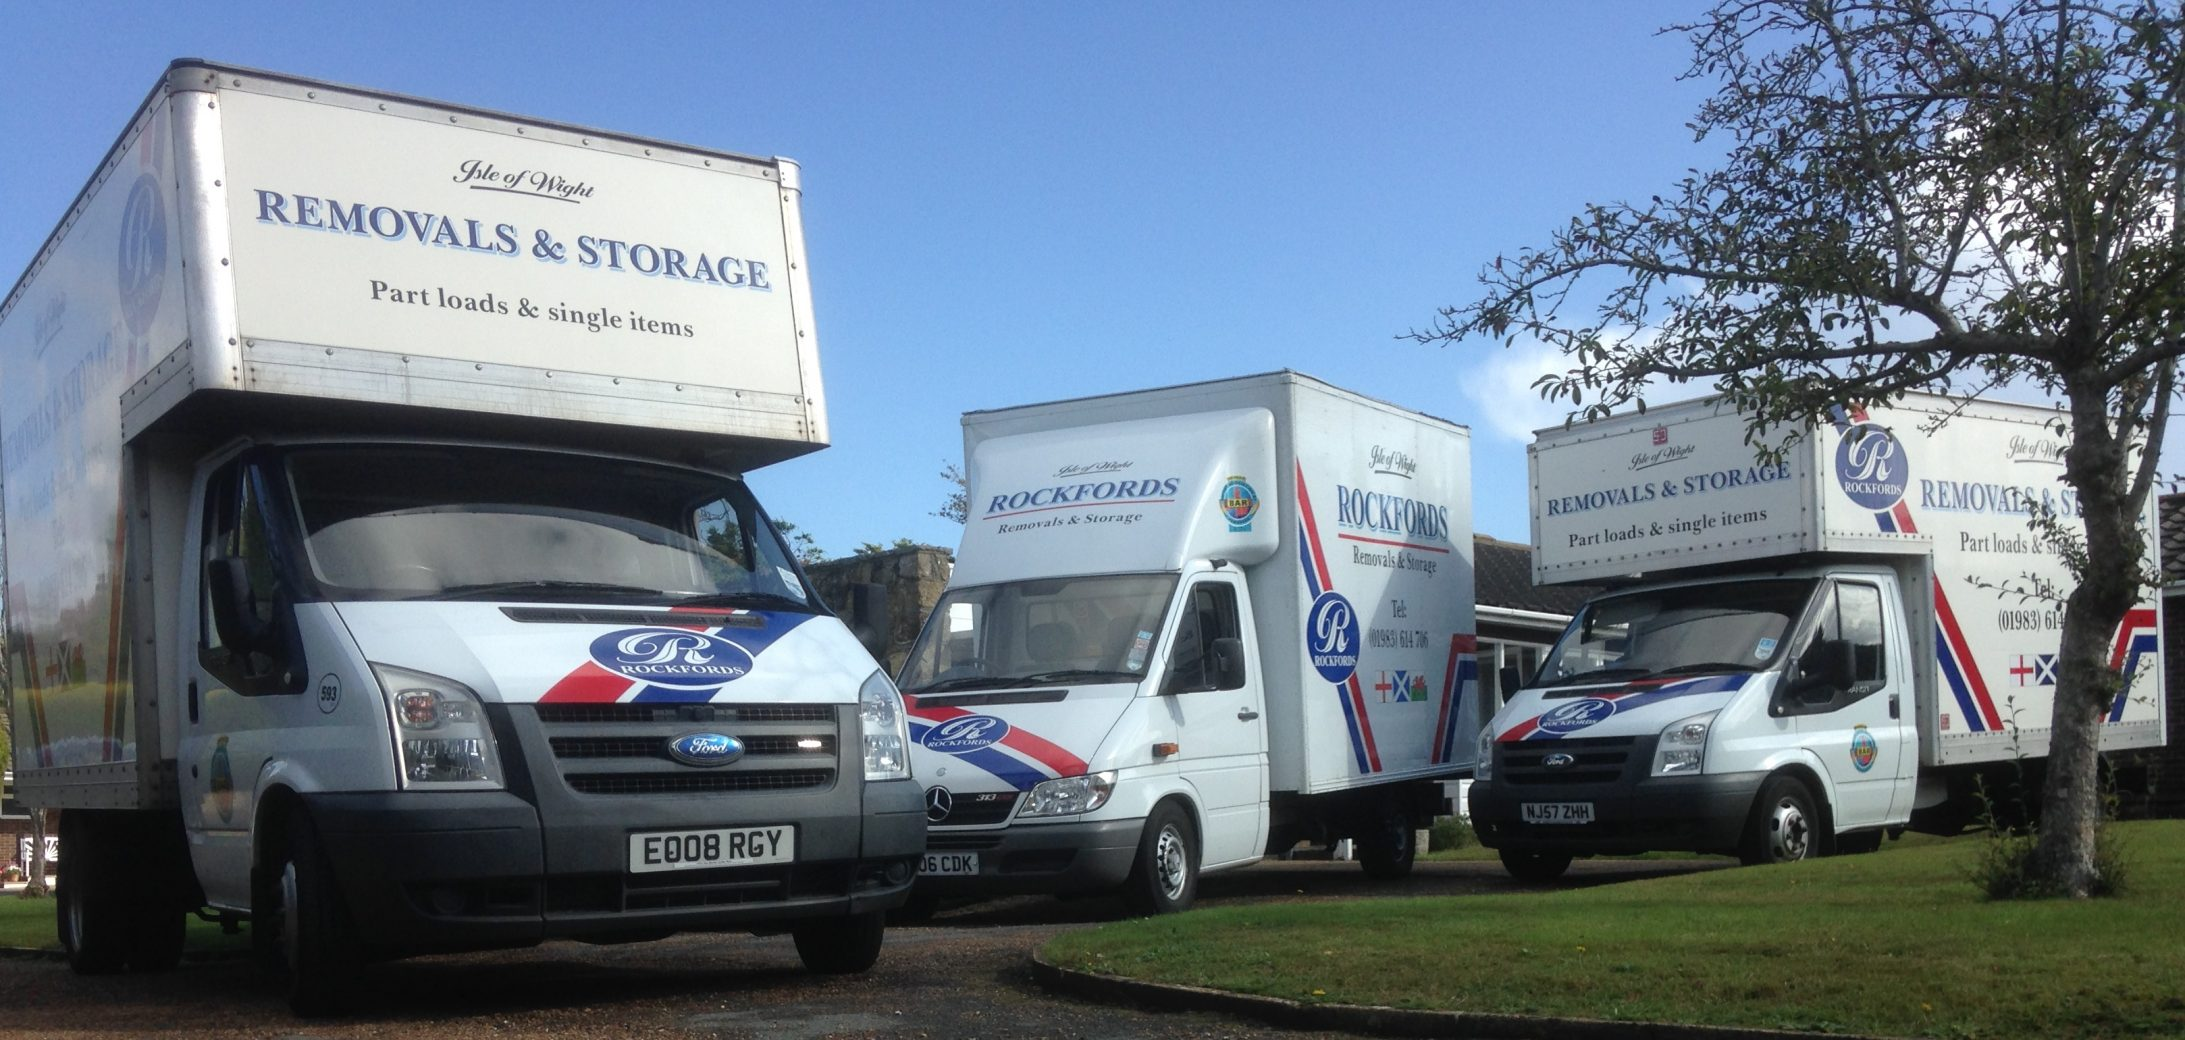 Isle of Wight Removals with Rockfords: The premier removals